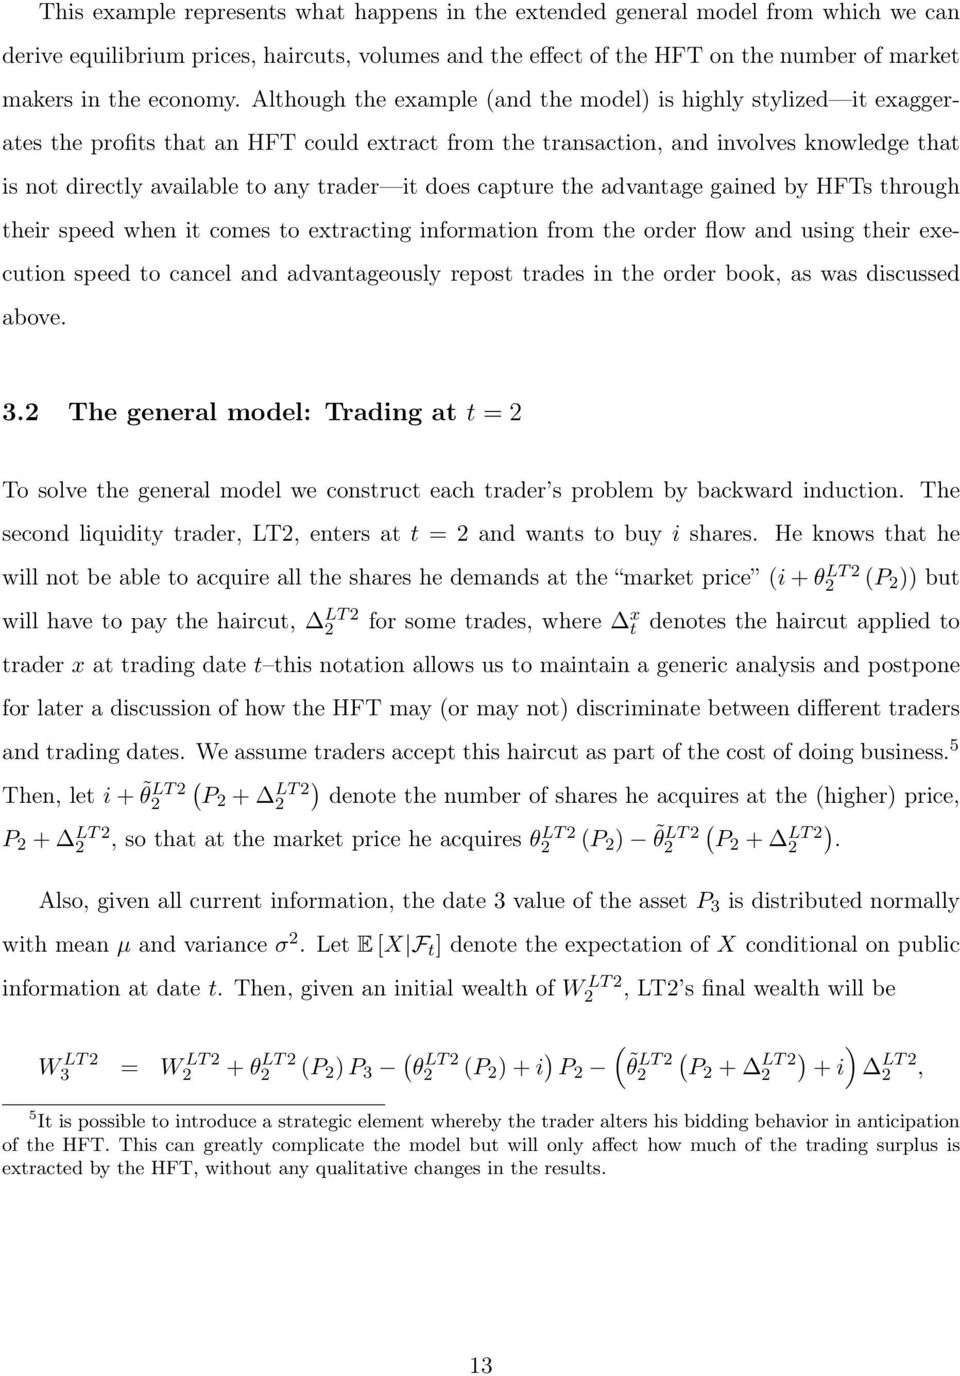 Although the example (and the model) is highly stylized it exaggerates the profits that an HFT could extract from the transaction, and involves knowledge that is not directly available to any trader